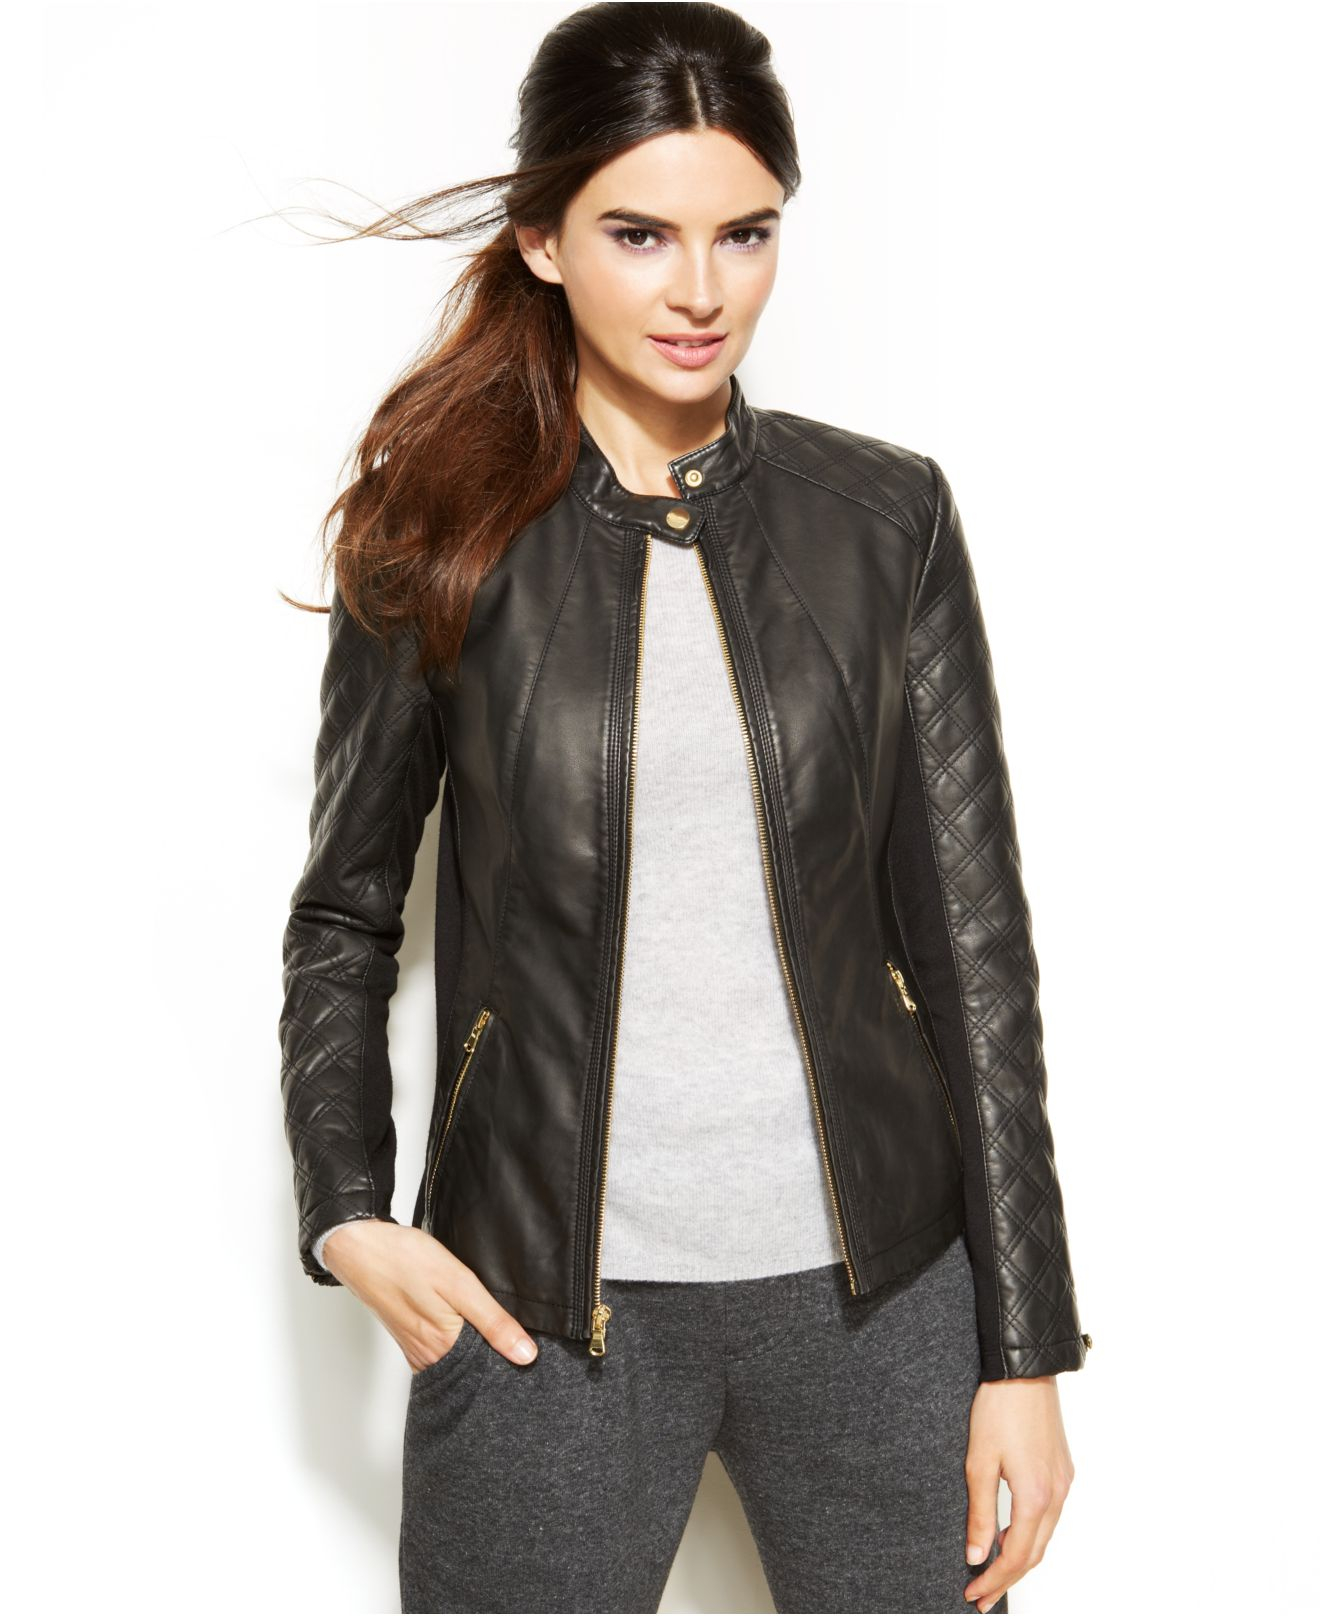 Images of Faux Leather Jacket Juniors - Reikian